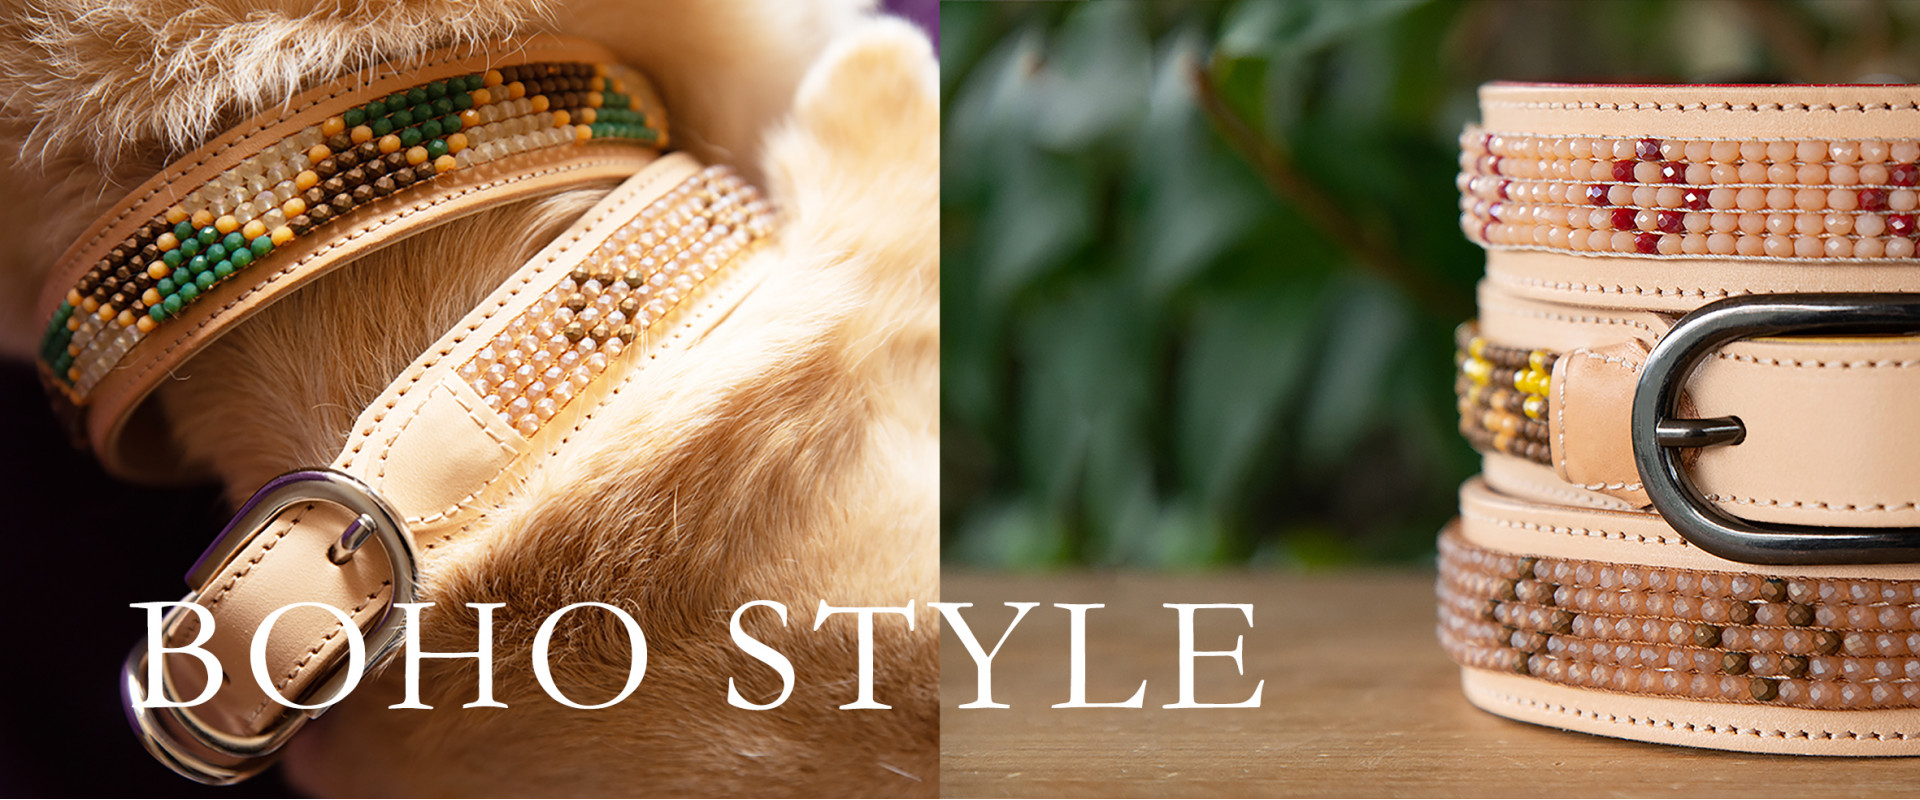 Boho Style | Designer-quality pet accessories by zikos